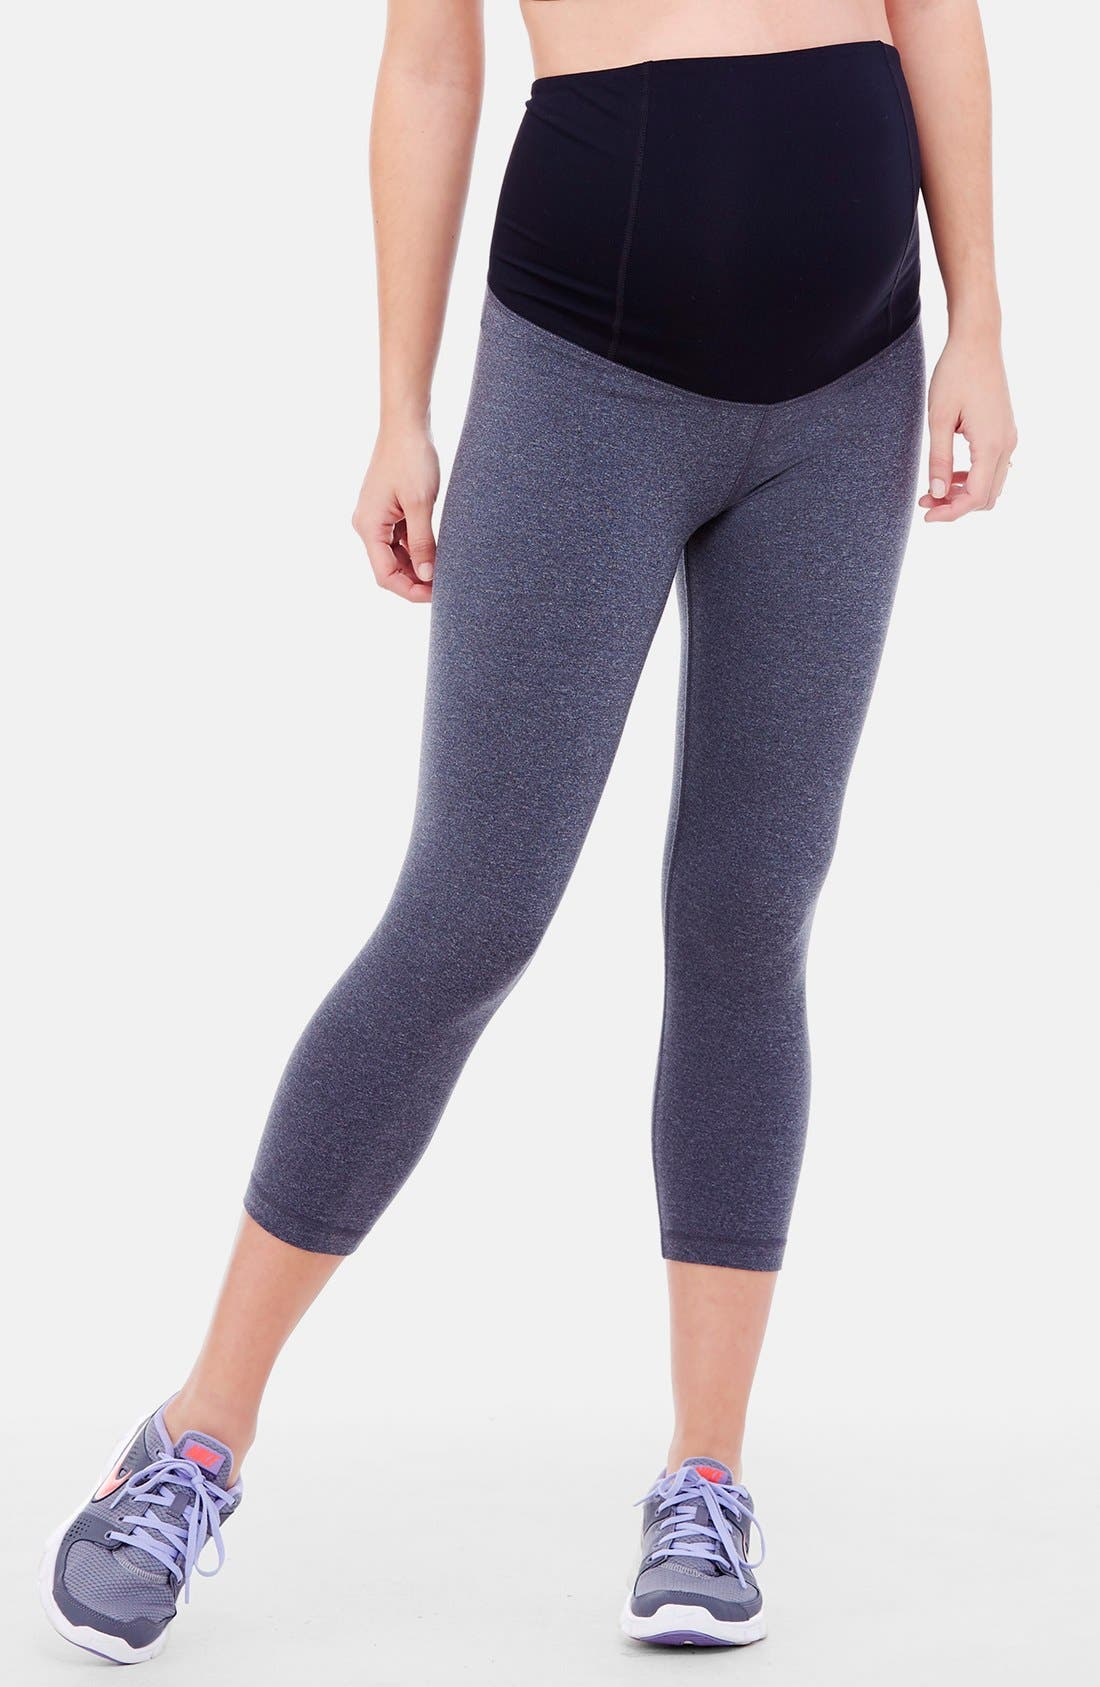 Active Maternity Capri Pants with Crossover Panel,                             Main thumbnail 1, color,                             Dark Heather Grey